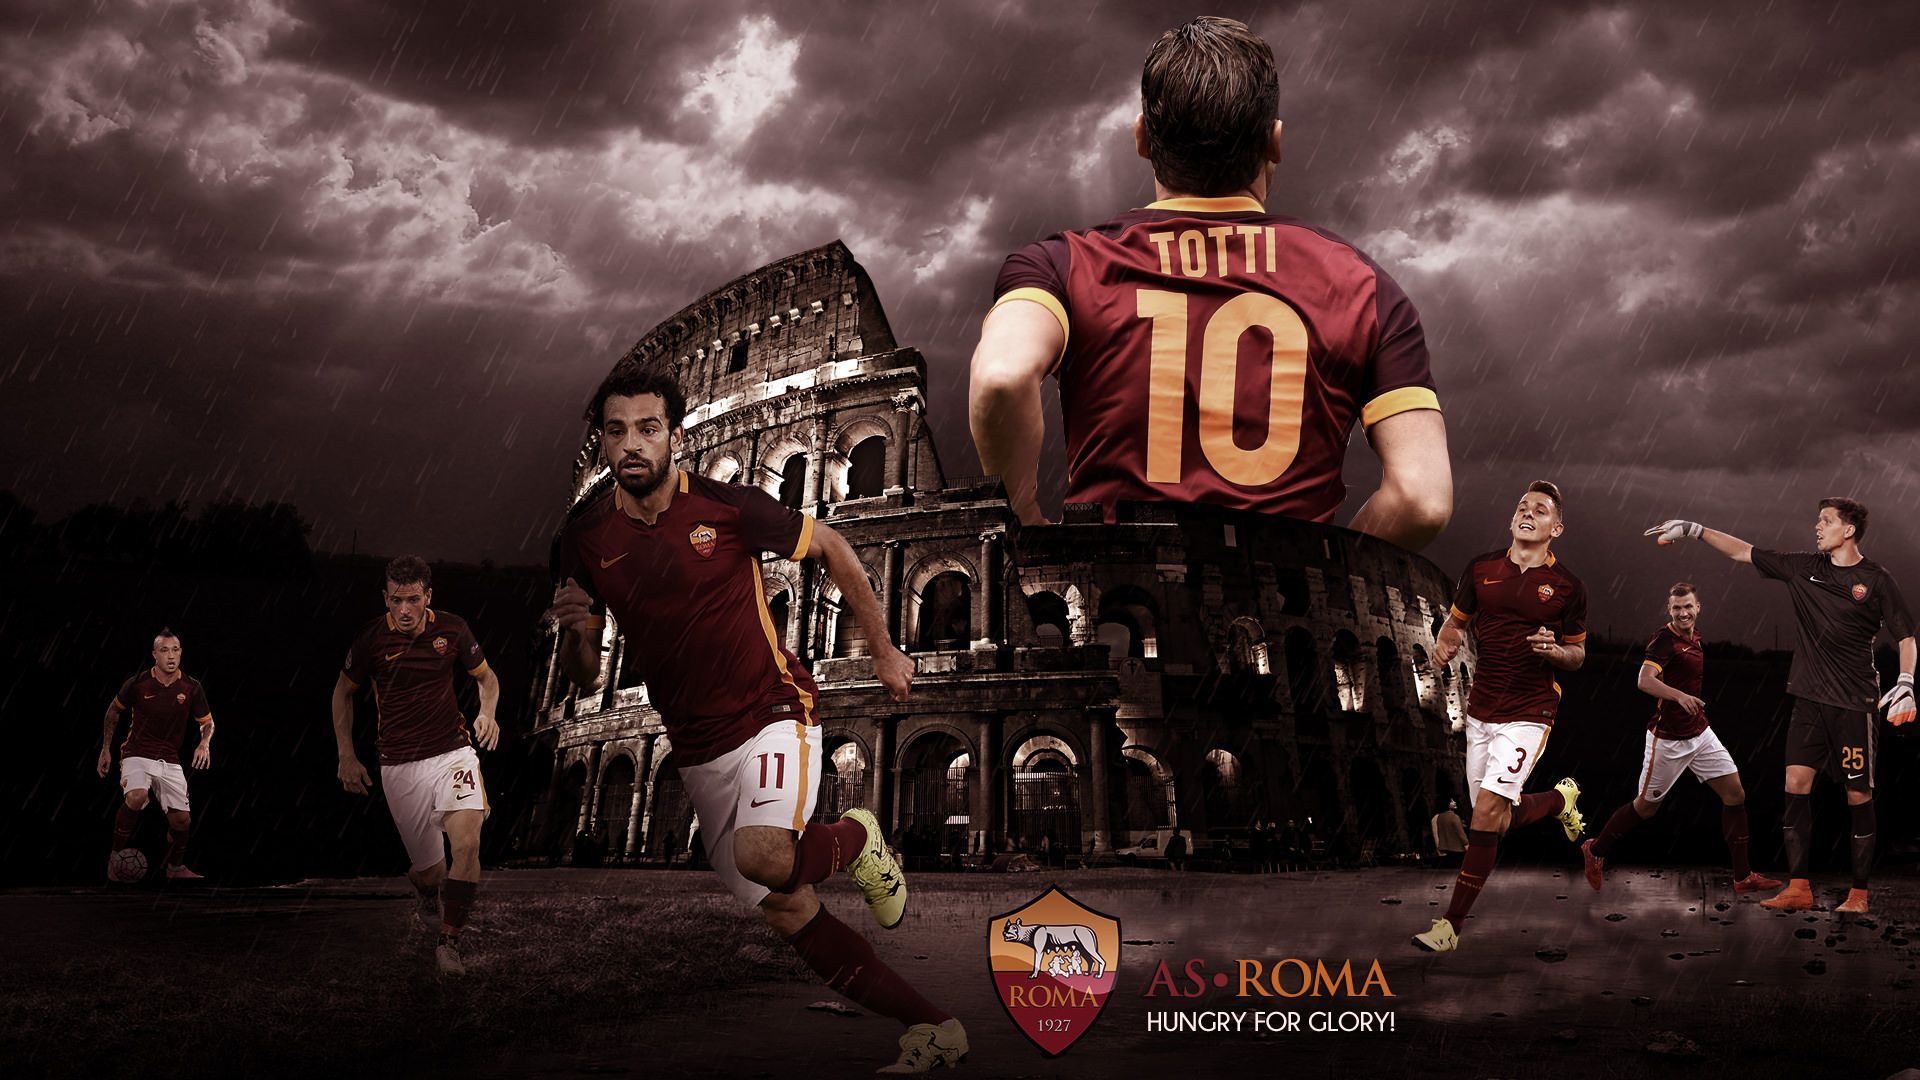 Francesco Totti AS Roma 2015 2016 Wallpaper